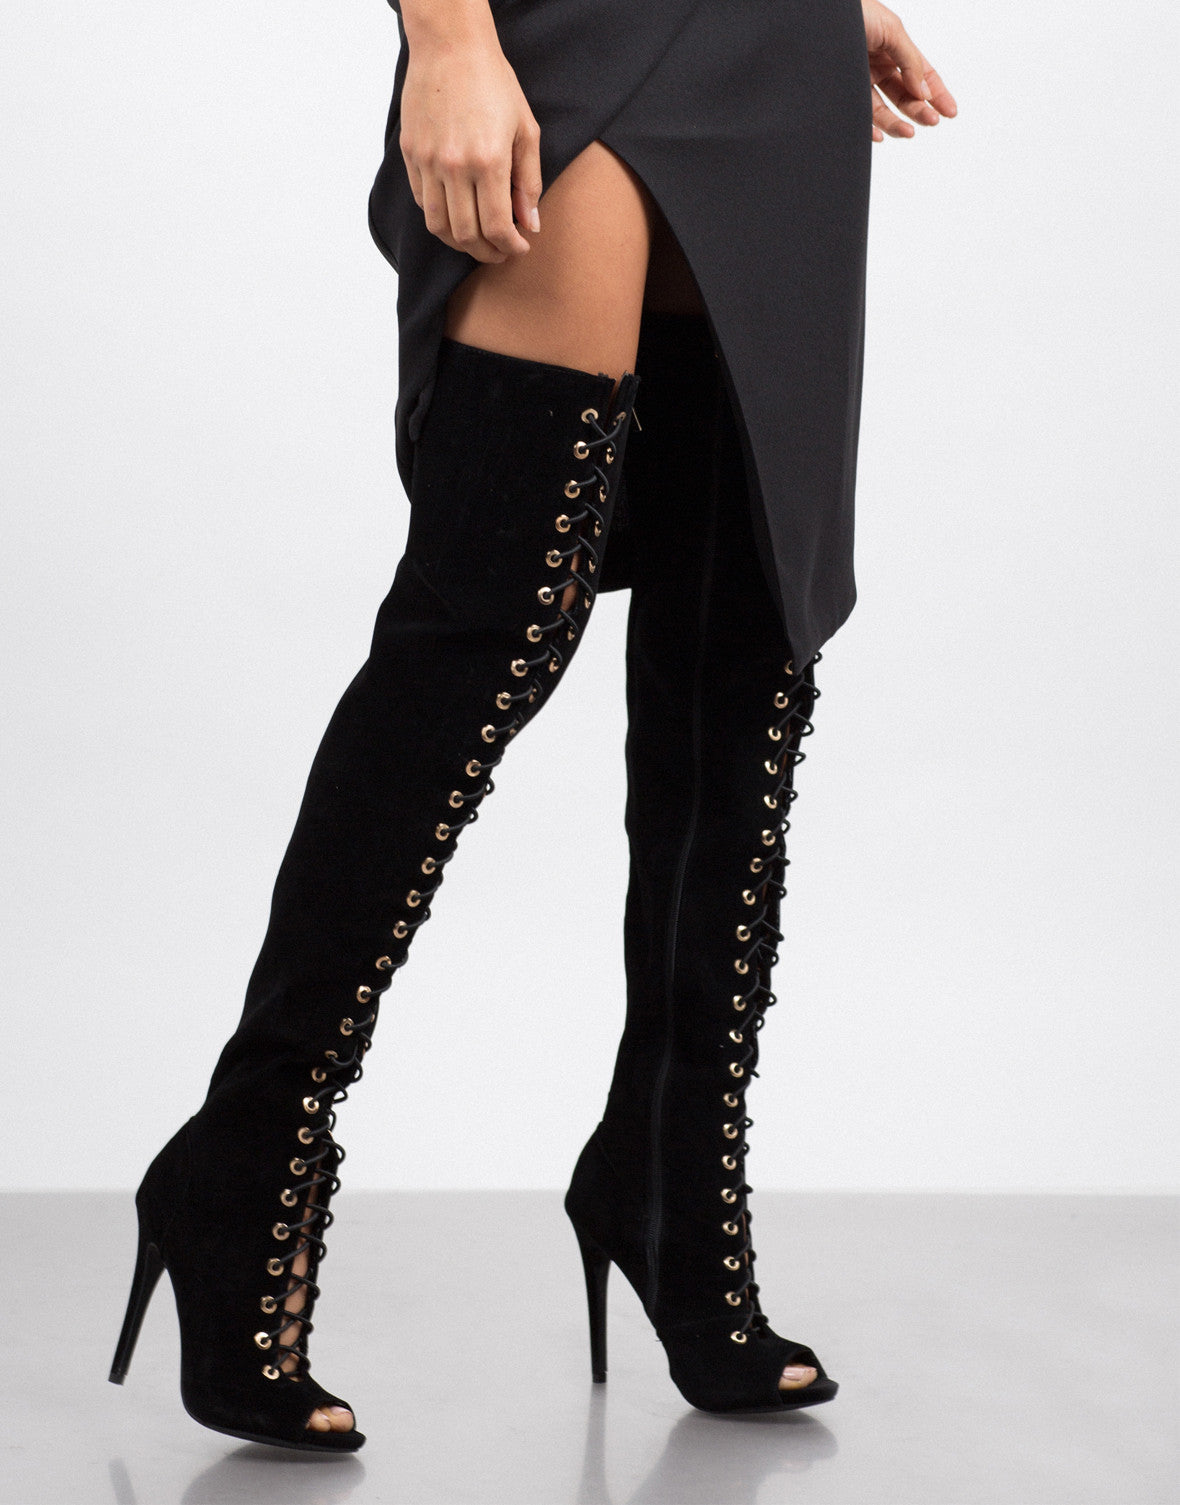 f80a205289a Lace-Up Thigh High Boots - Black Gladiator Heels - Peep Toe – 2020AVE